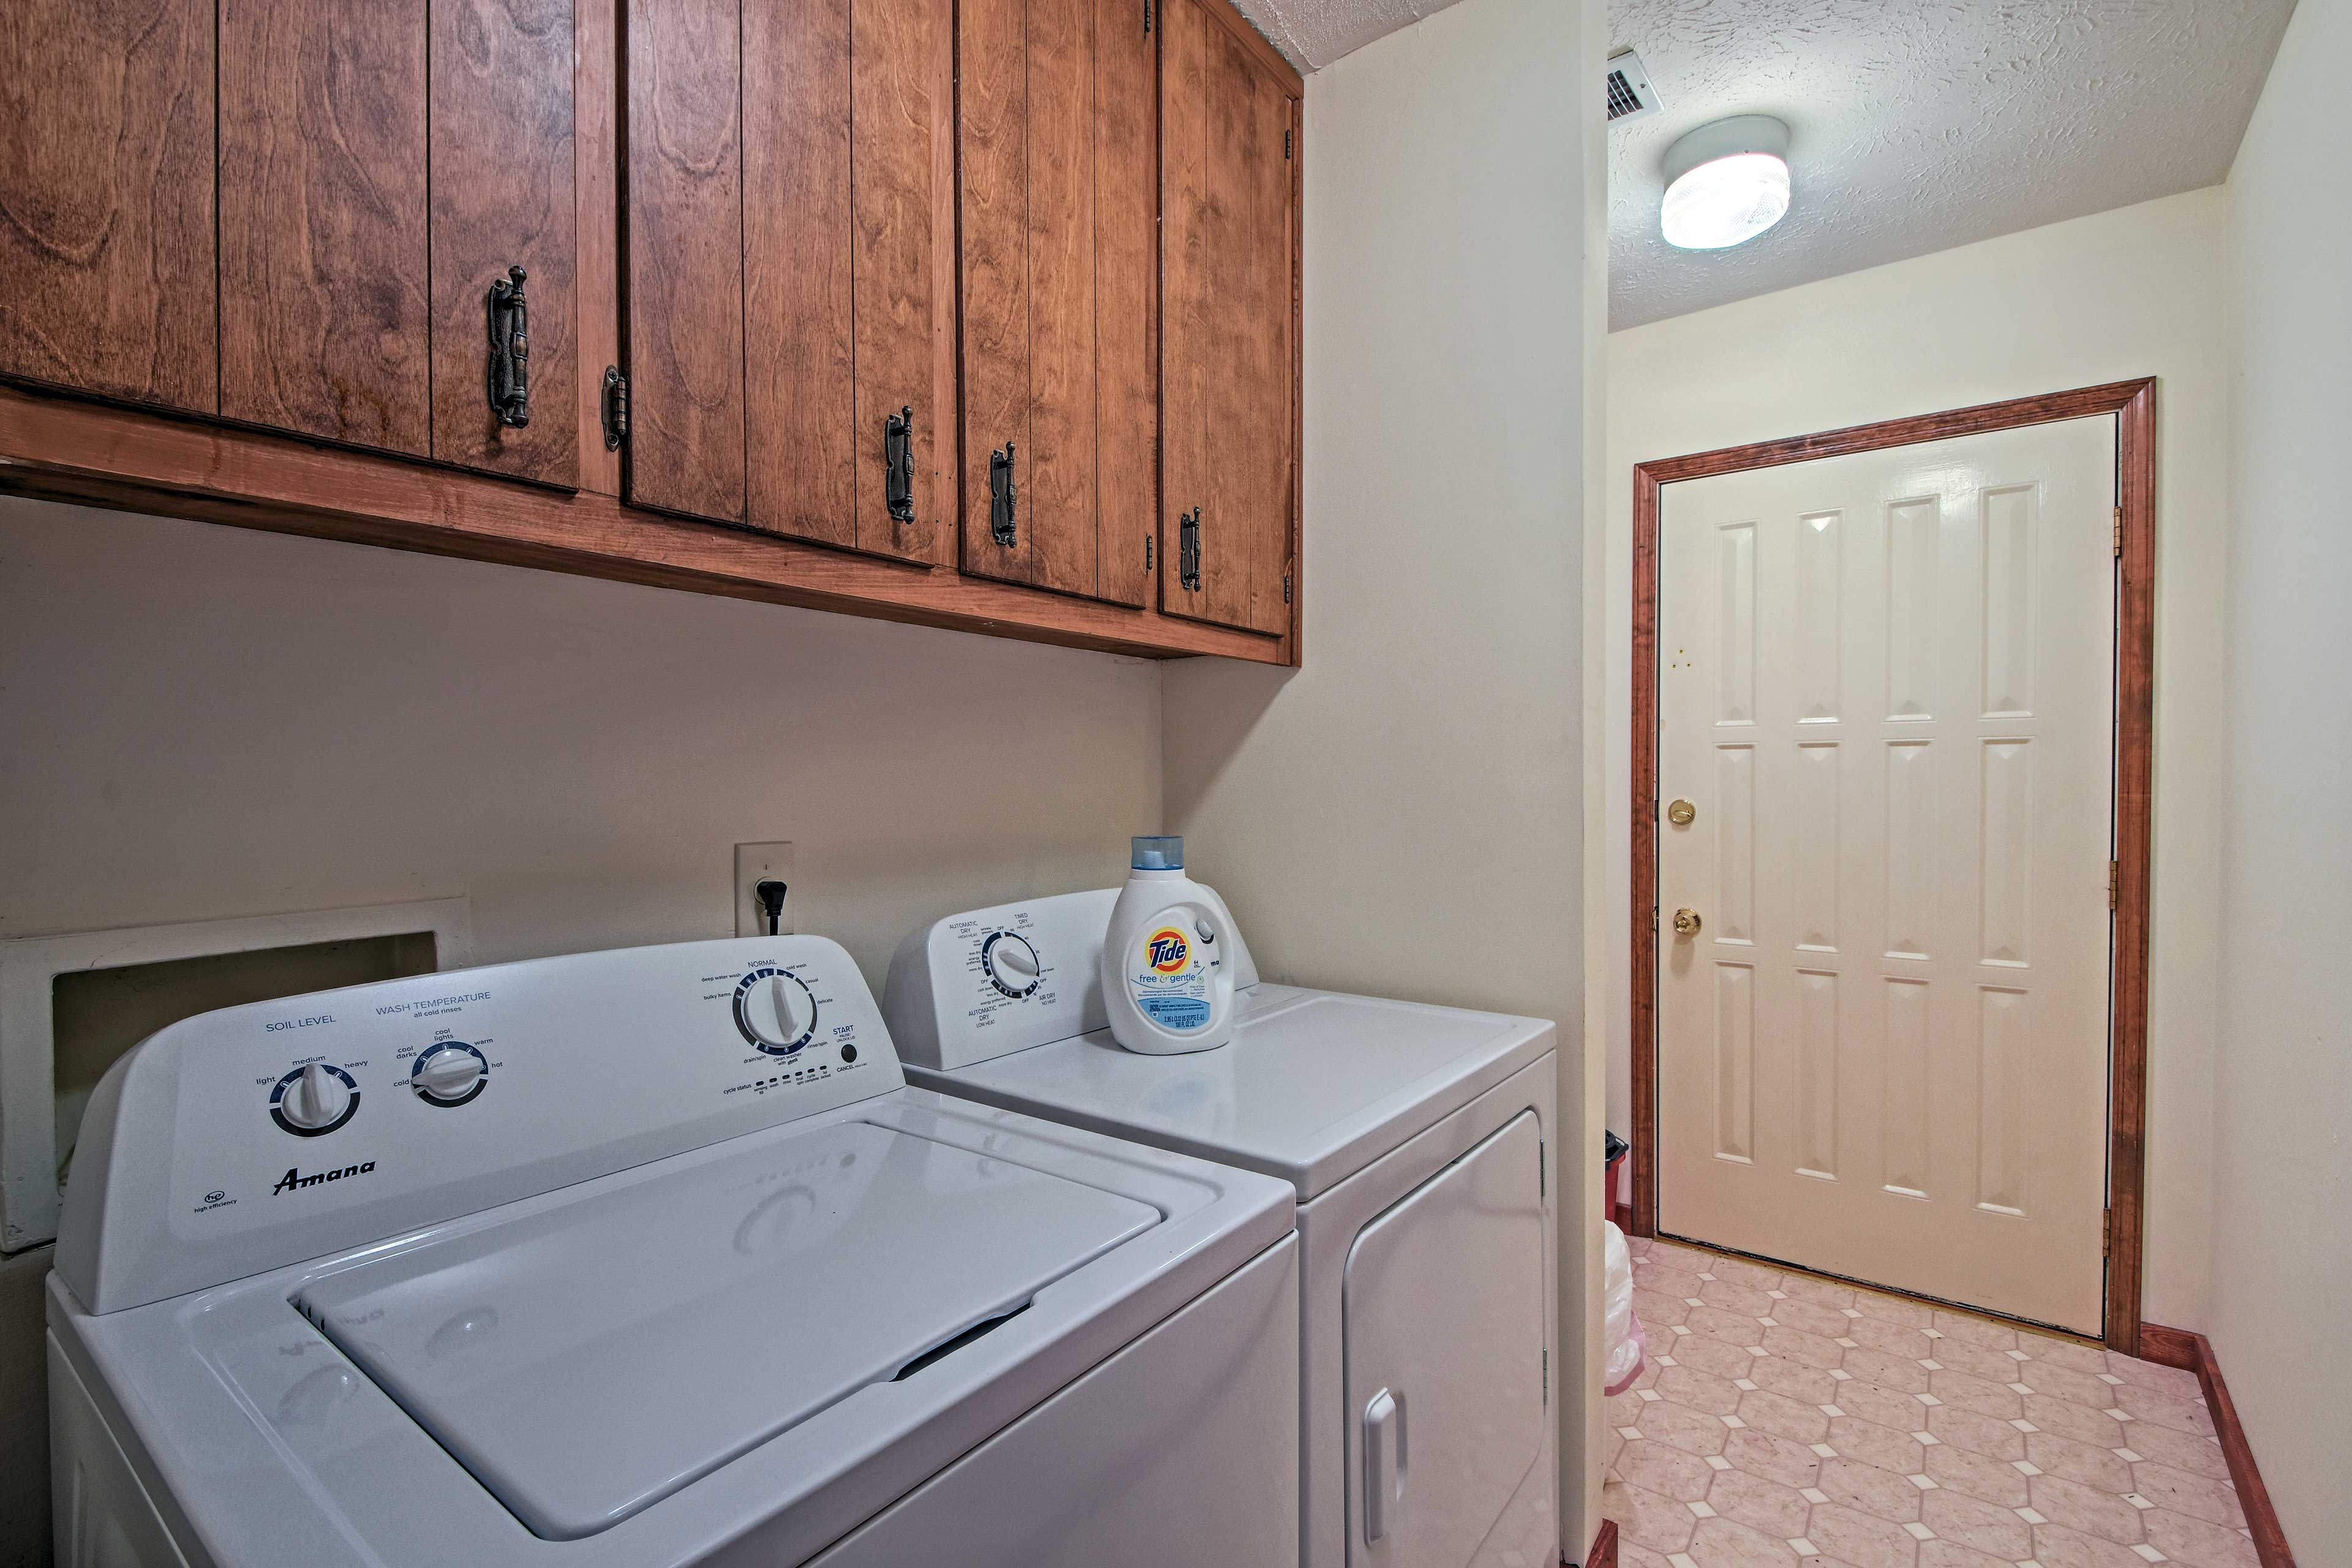 'Deer Path' has both a washer and dryer for your convenience.